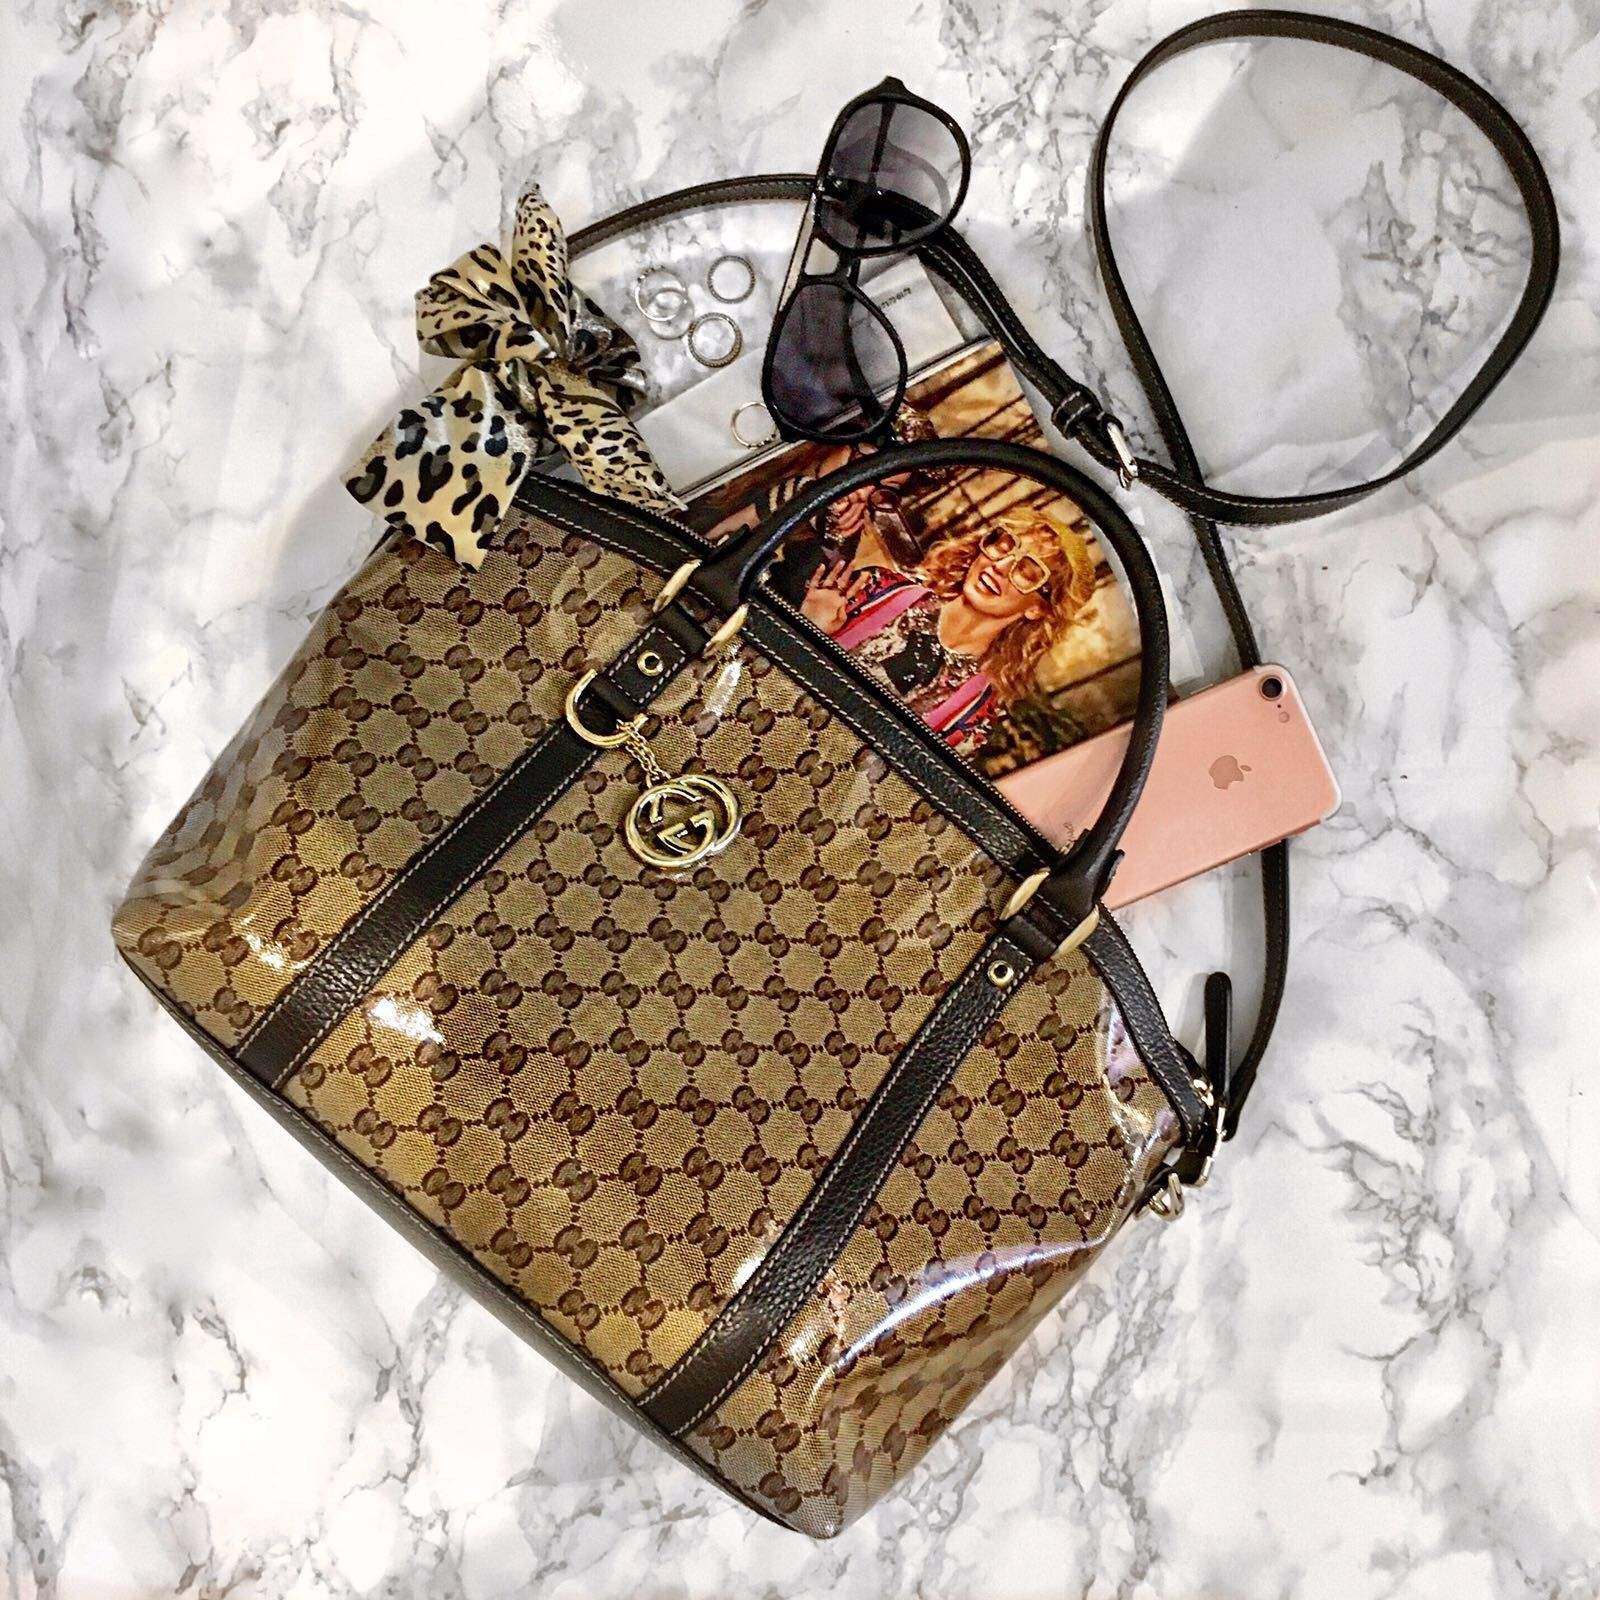 Shop In Style With This Gucci Vinyl Tote Priced At 495 Browse Our Full Colelction Of Desigenr Bags On Our Website From Ch Gucci Bag Bags Gucci Monogram